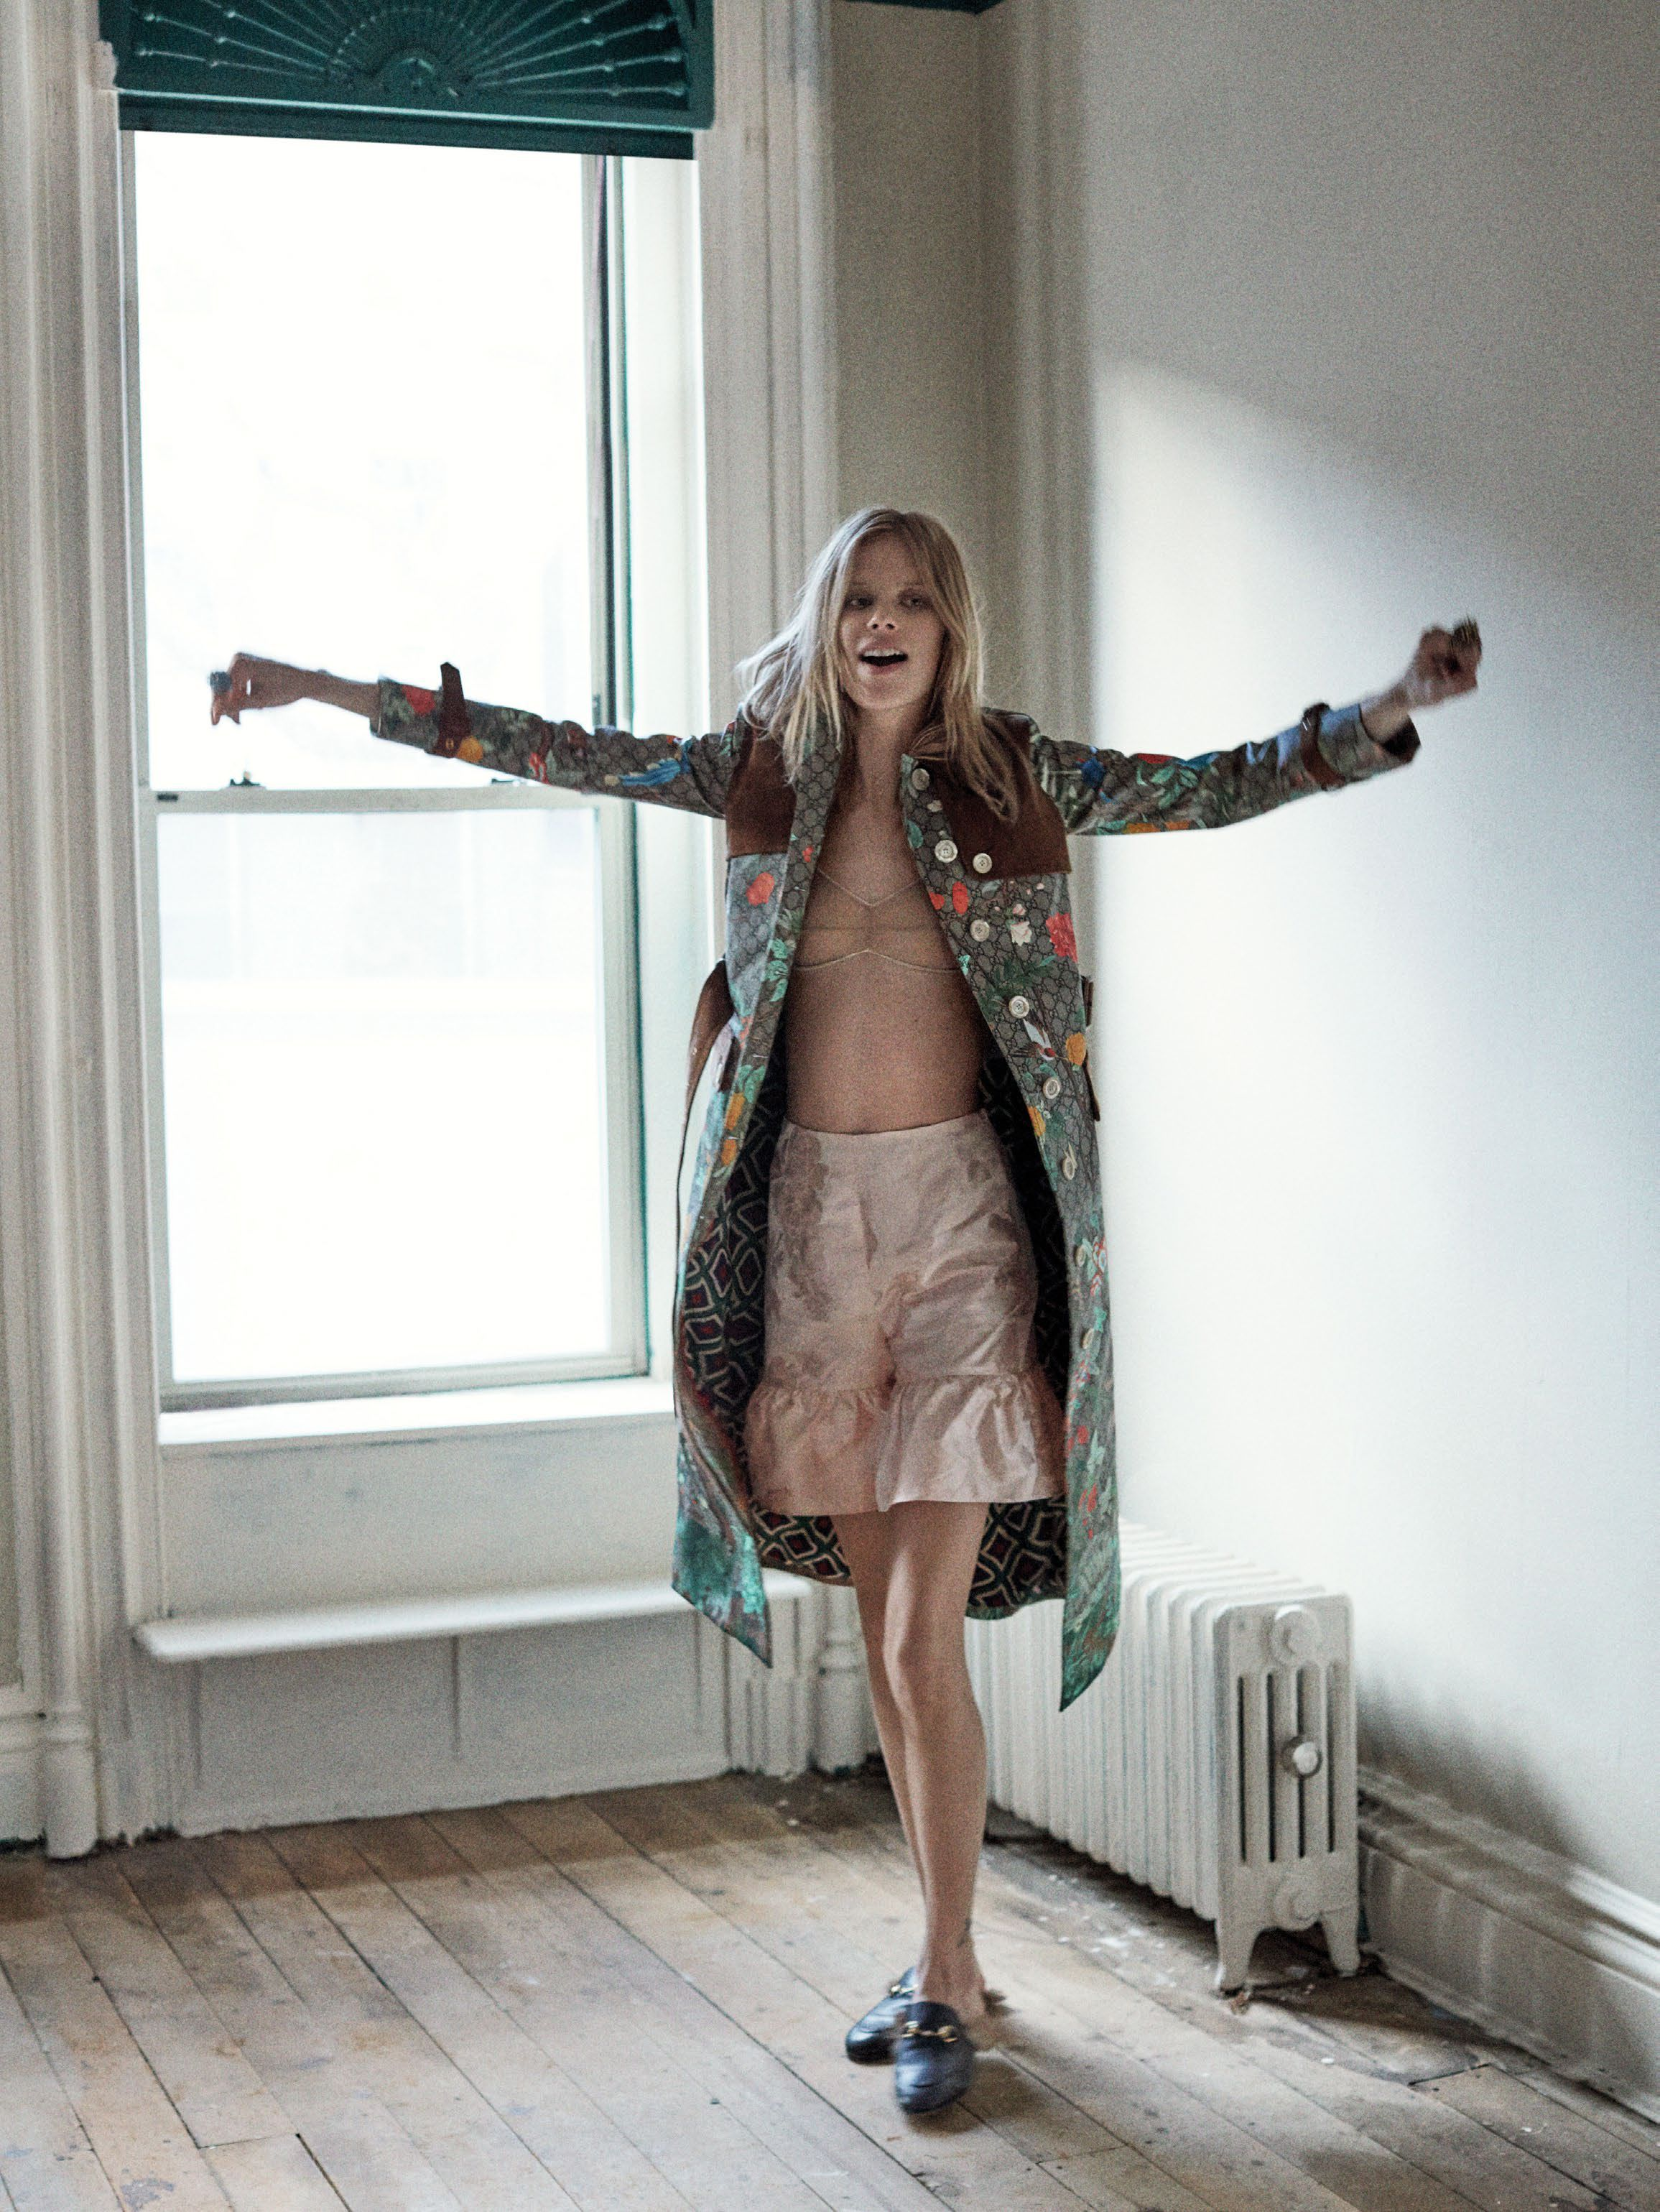 Is a cute Lexi Boling nude photos 2019